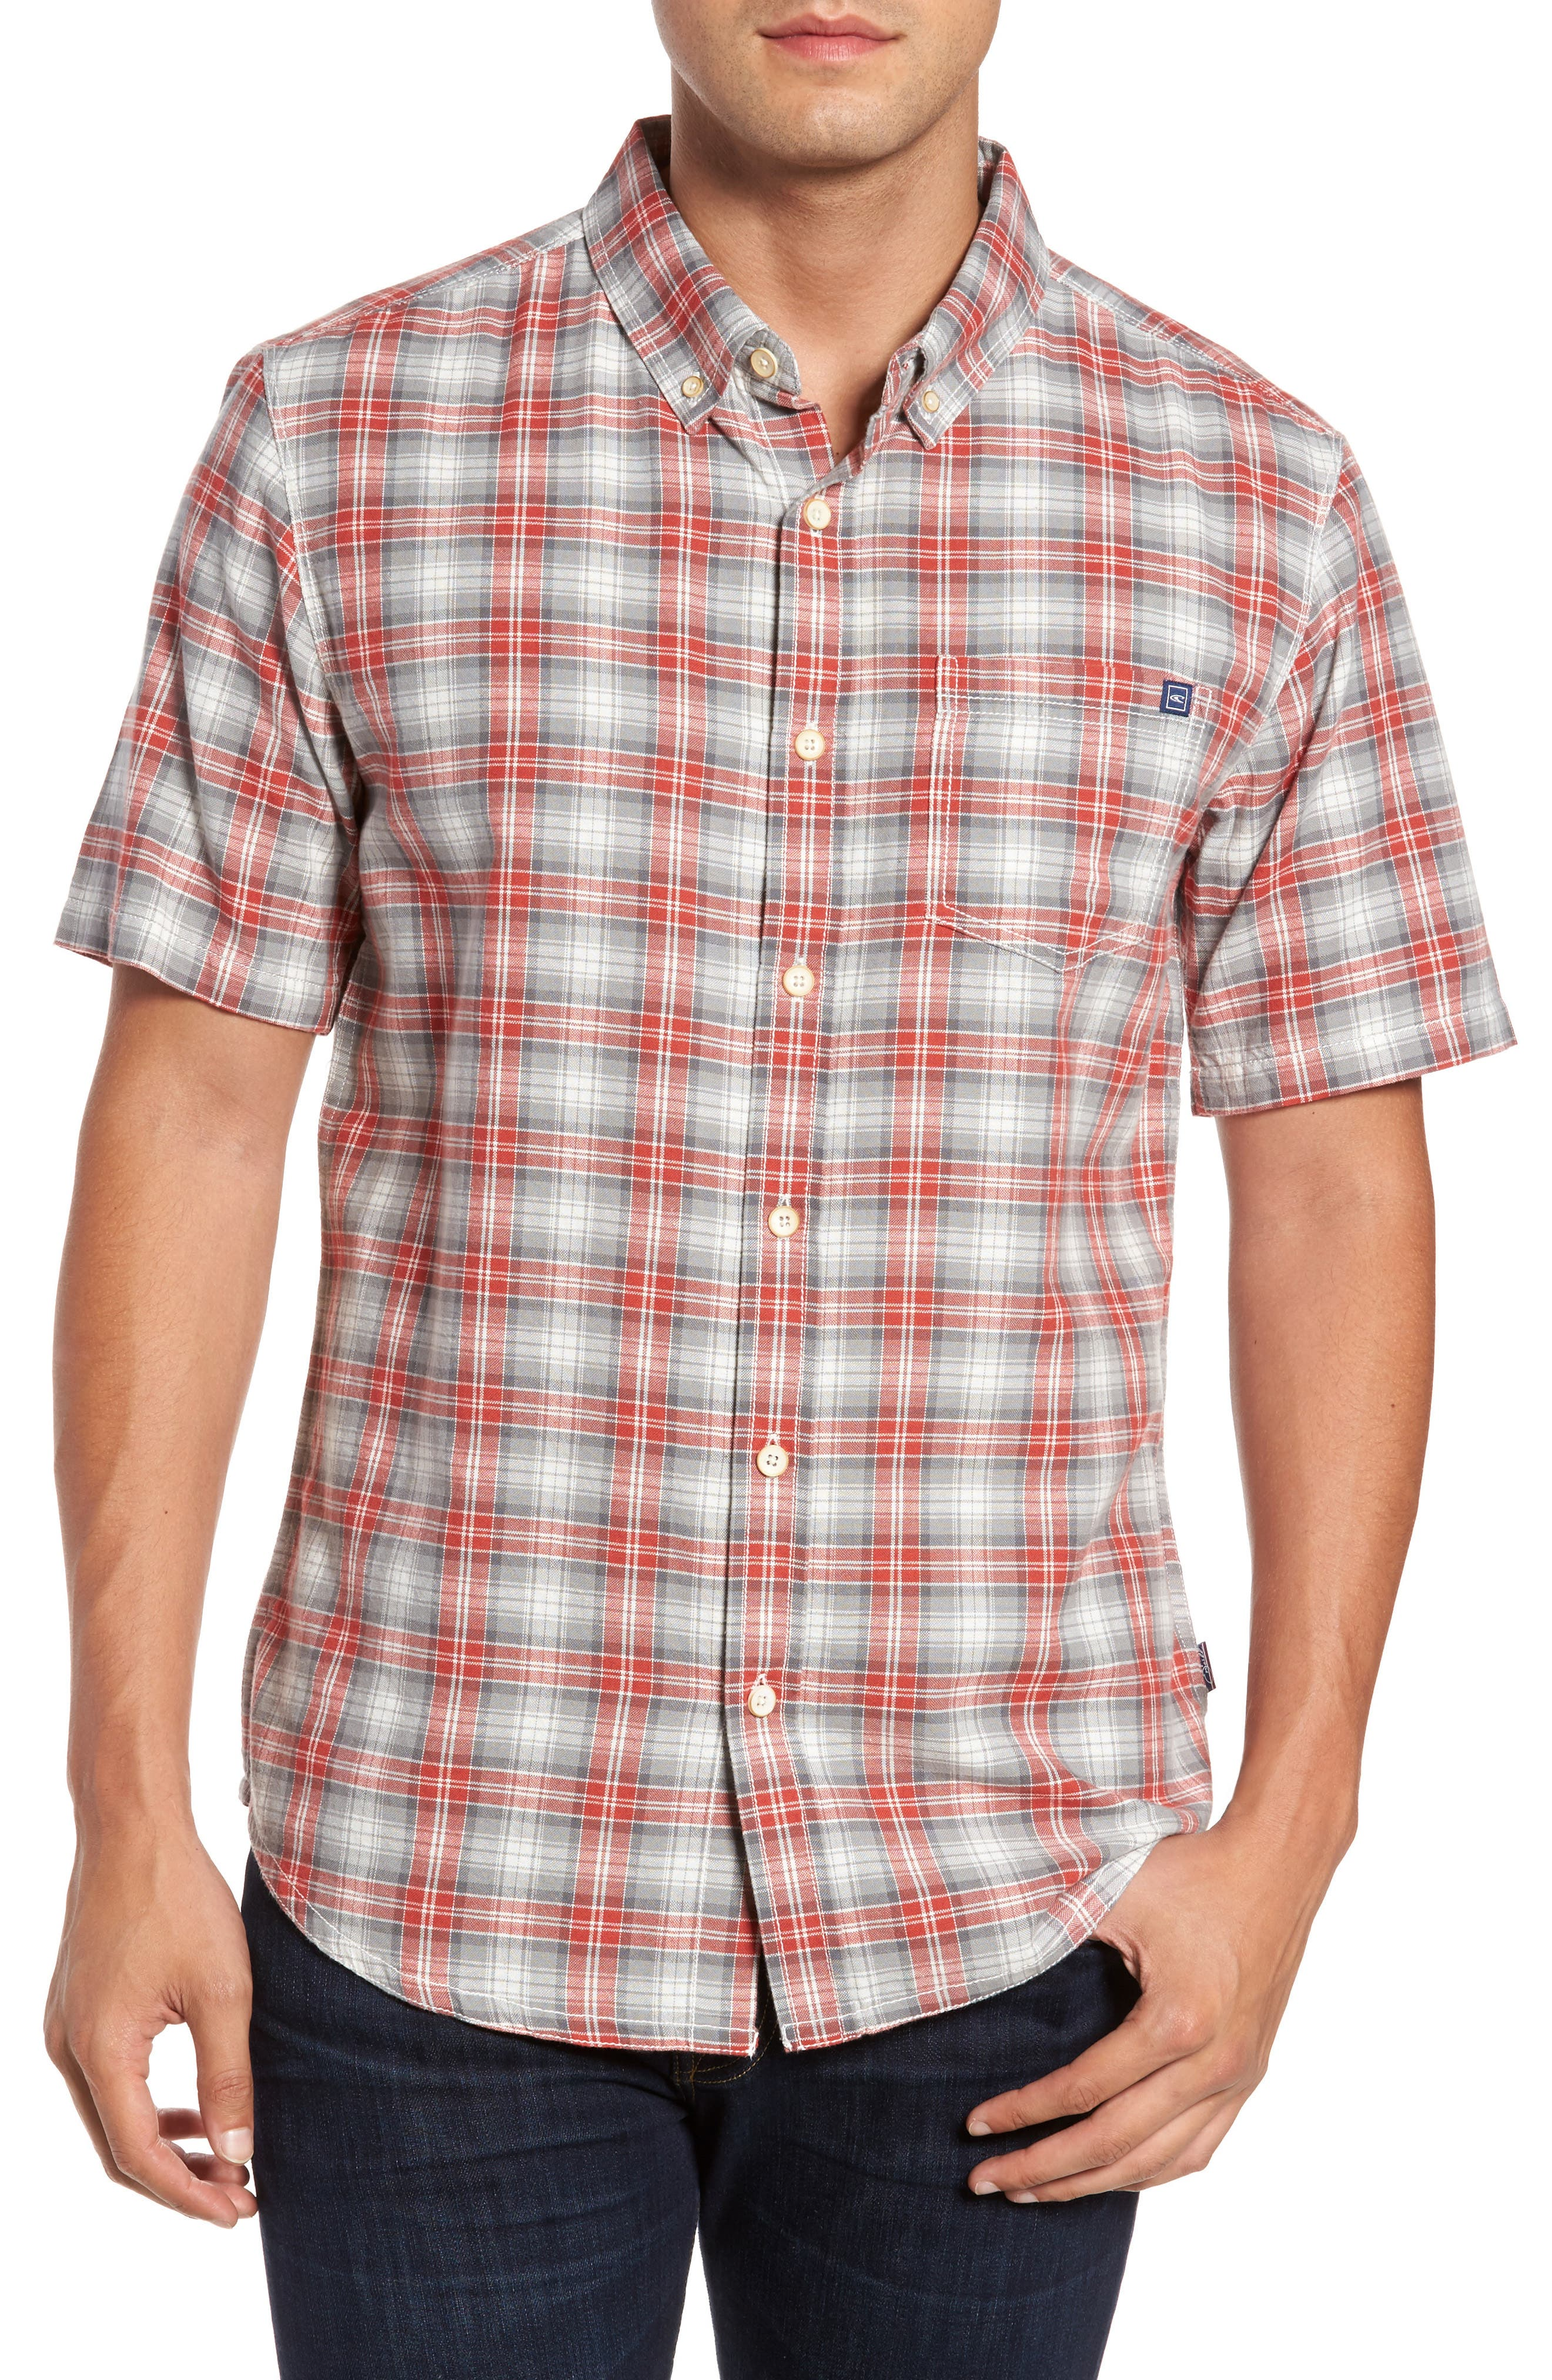 Voyager Plaid Sport Shirt,                             Main thumbnail 1, color,